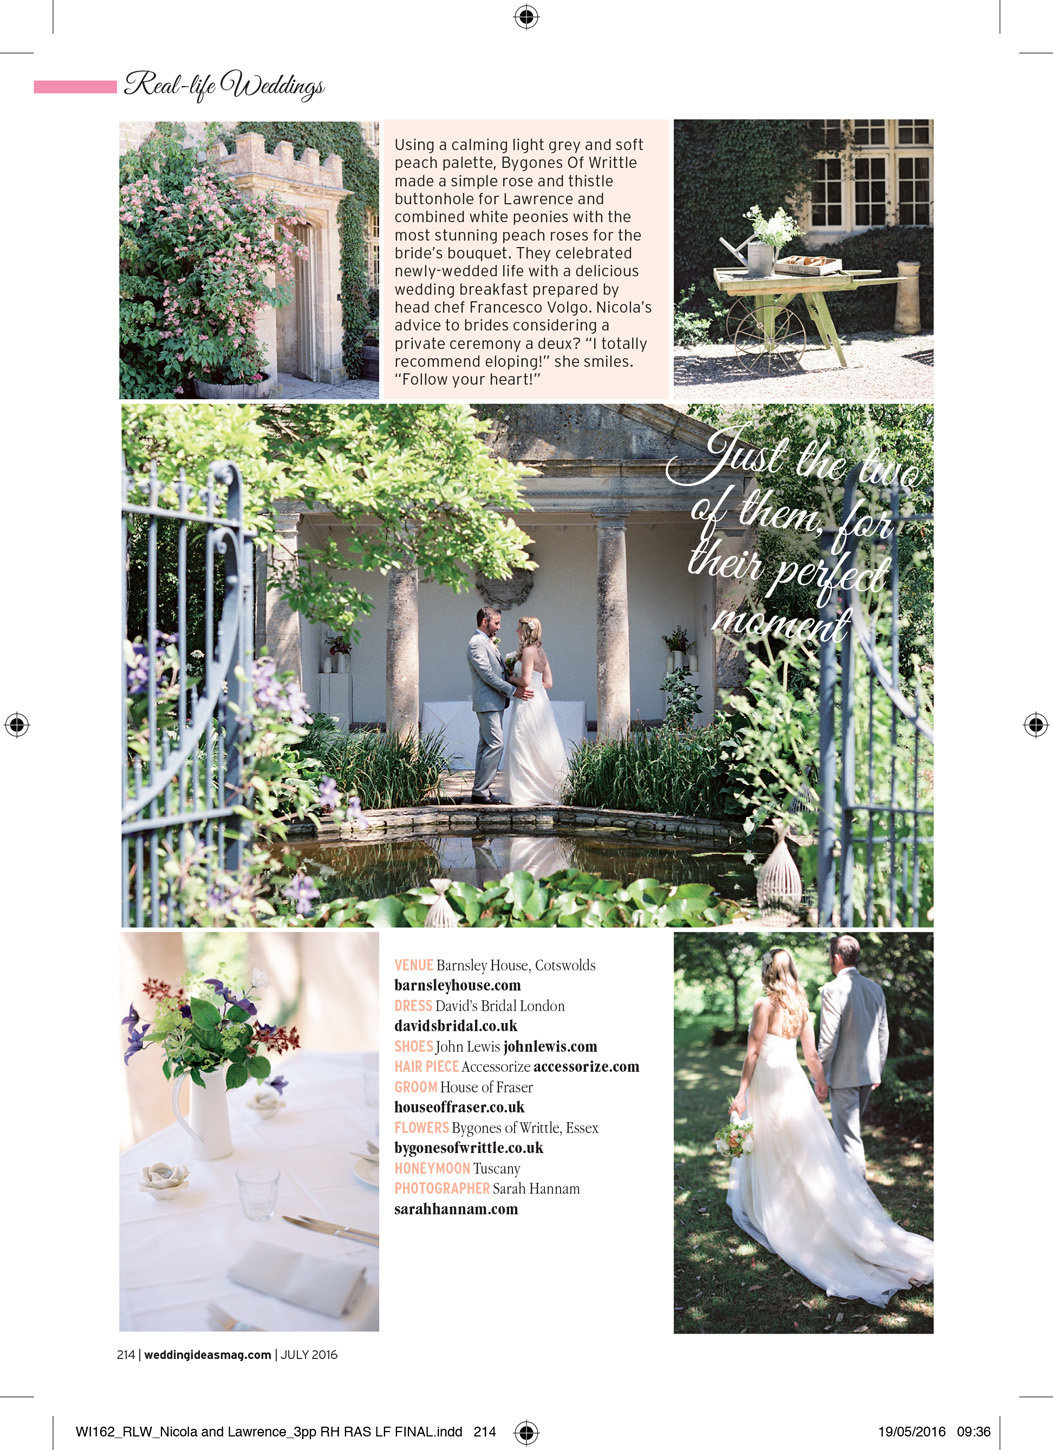 wedding ideas magazine barnsley house wedding